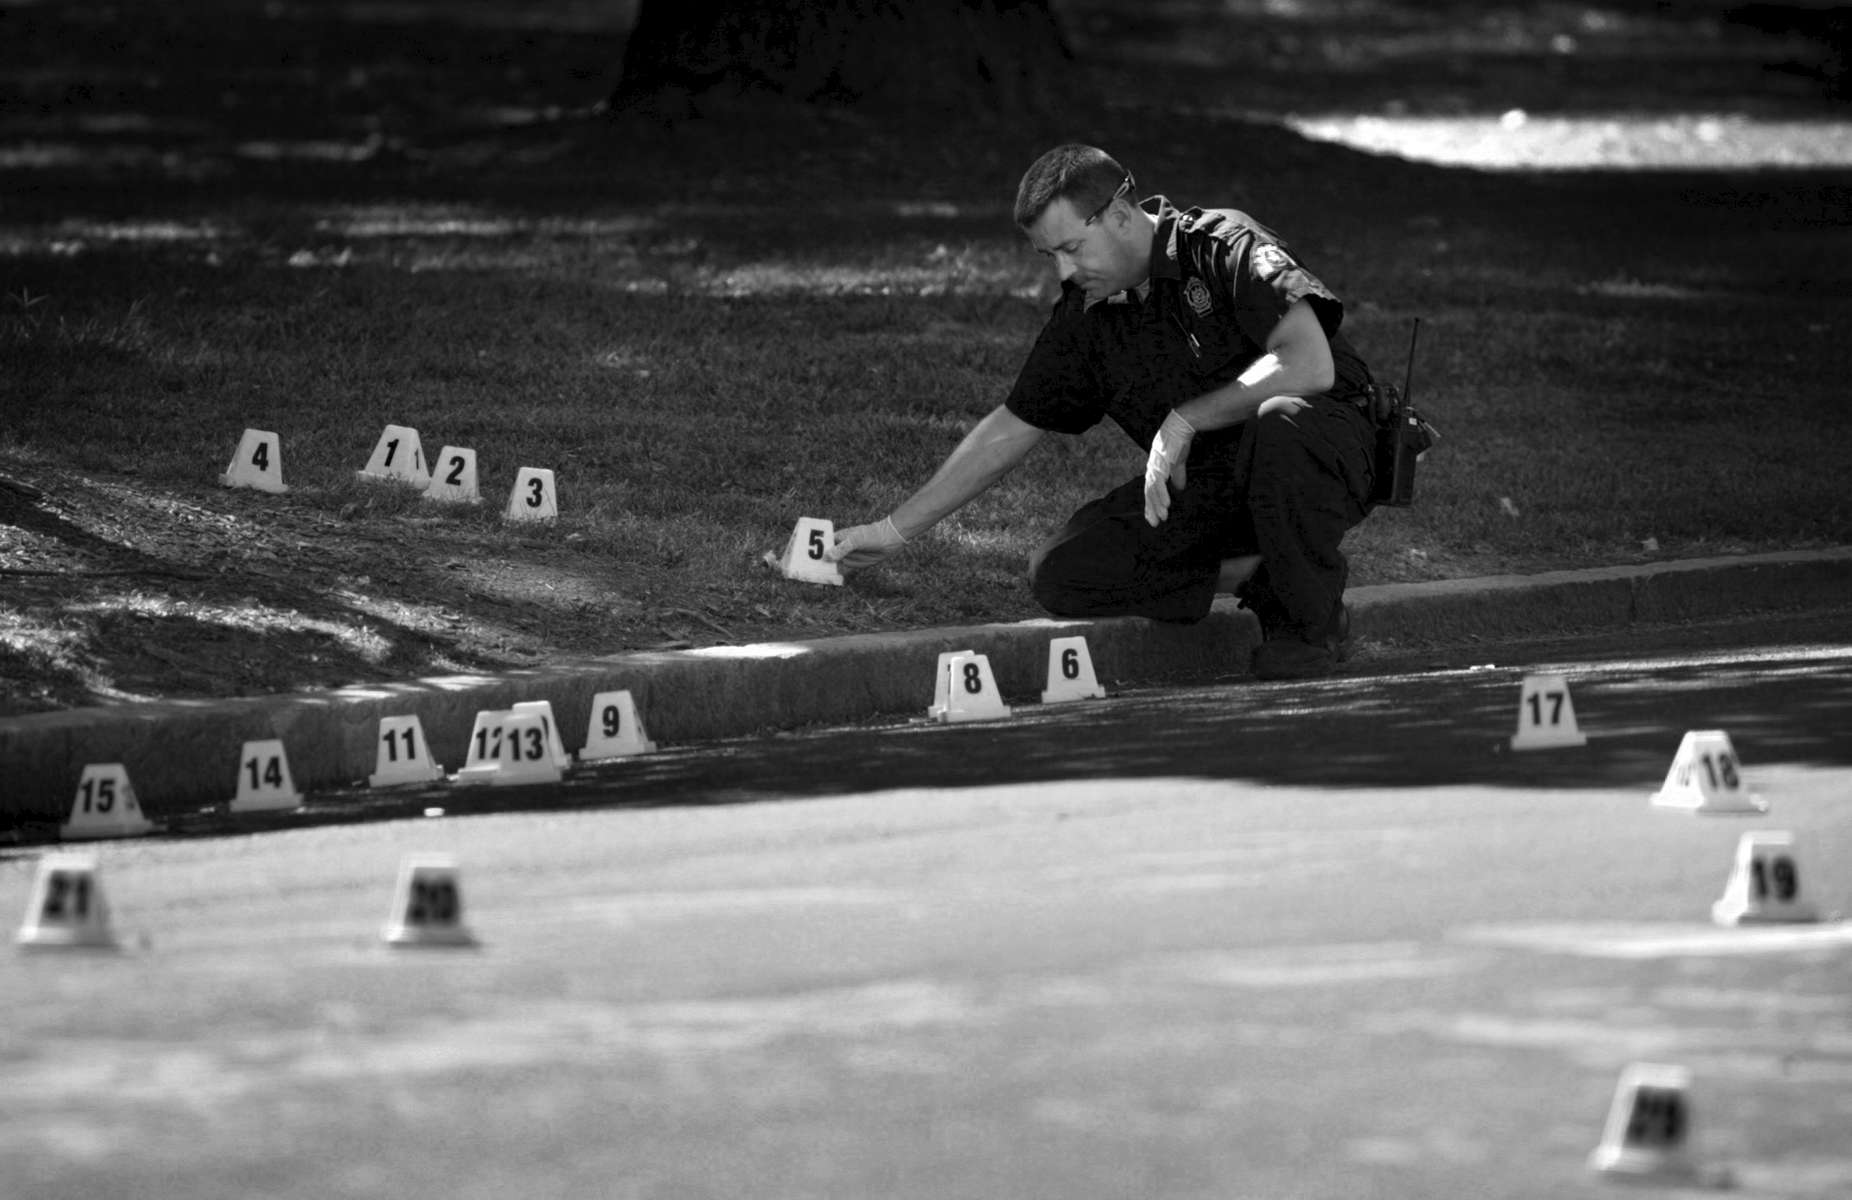 Thursday September 17, 2009--St. Louis Police Department crime scene technician Tom Burgoon places evidence markers next to all the shell casings that littered the ground near the scene of shooting at Fountain Ave. and N. Eucid Ave on Thursday.  The victim was transported to the hospital where he was listed in critical condition.David Carson     dcarson@post-dispatch.com